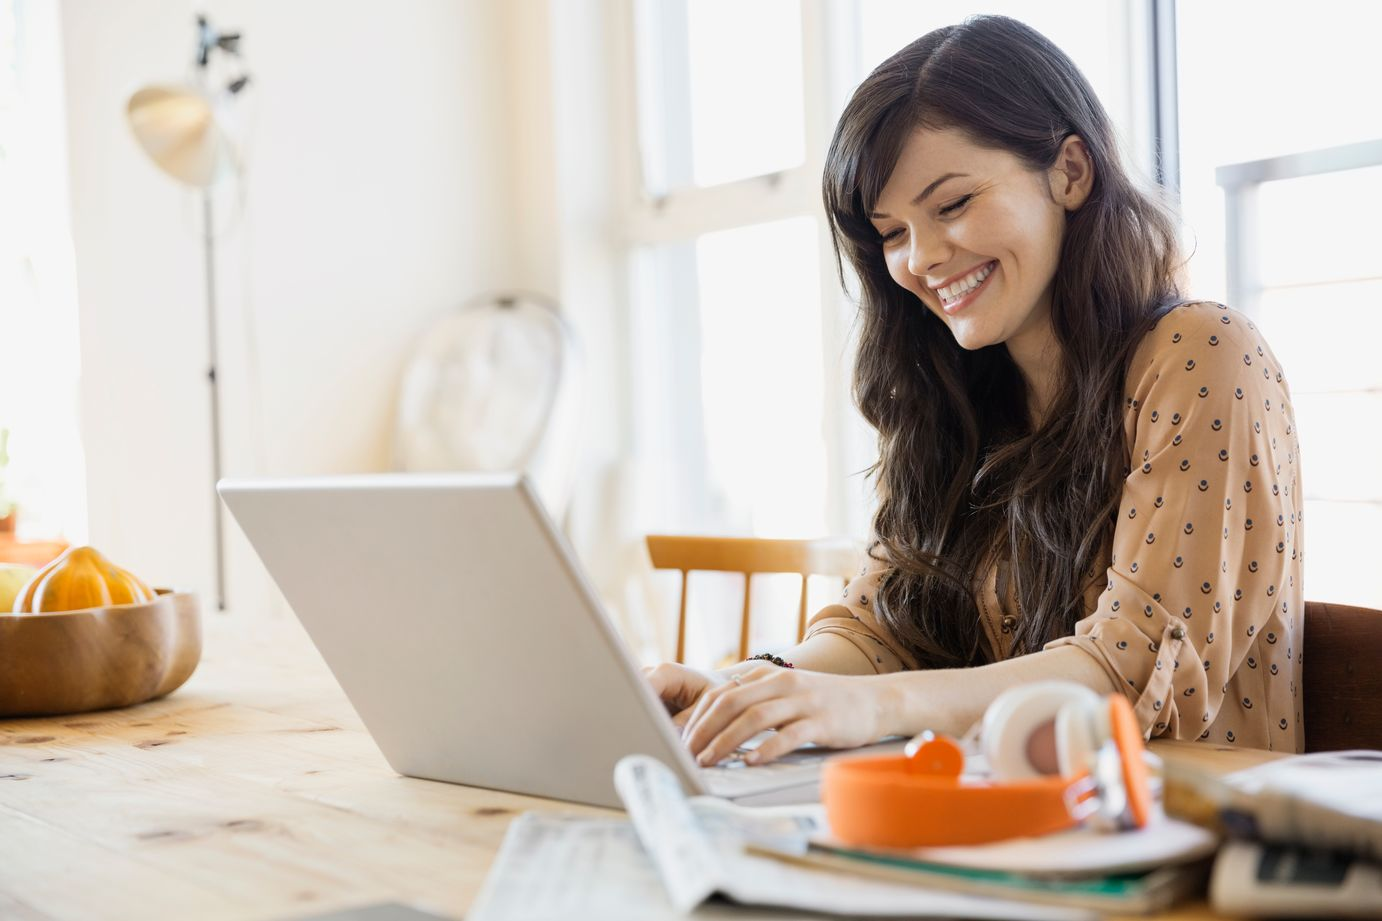 woman sitting at table, smiling and looking at laptop